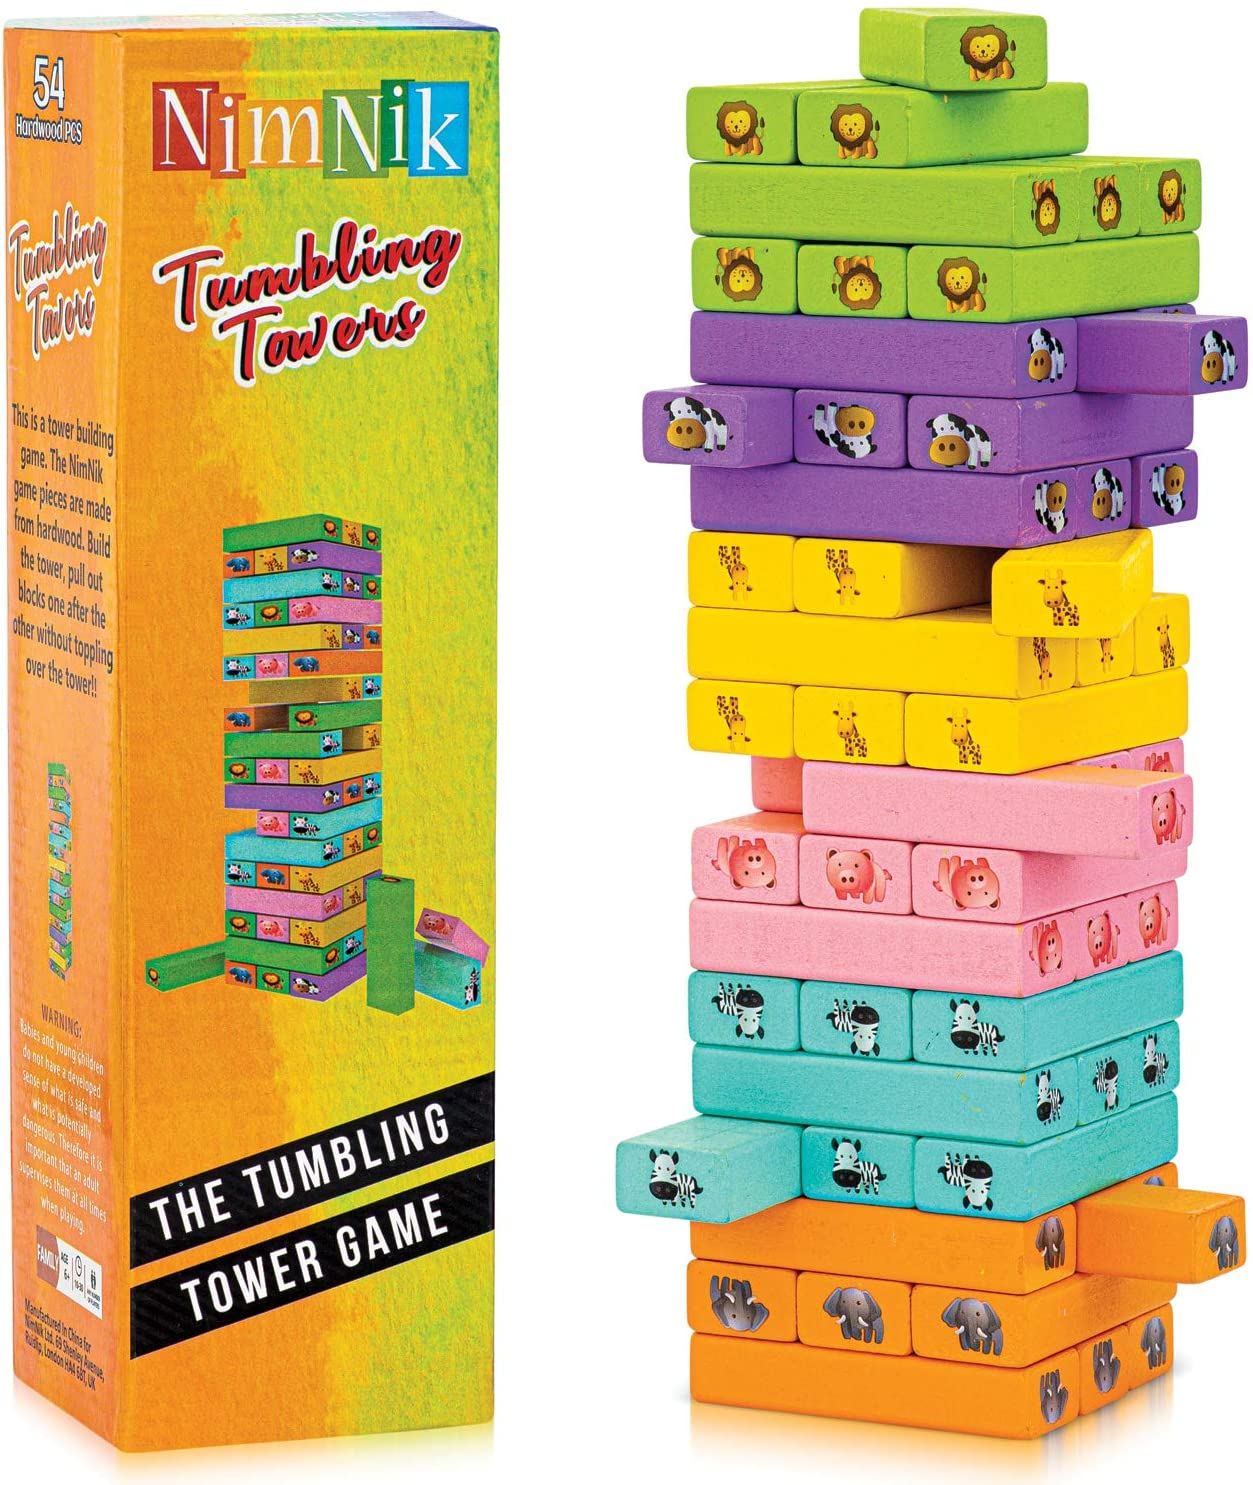 Wooden Blocks Stacking Building Game Indoor Tower Tumbling Kid - Ranking TOP14 New popularity